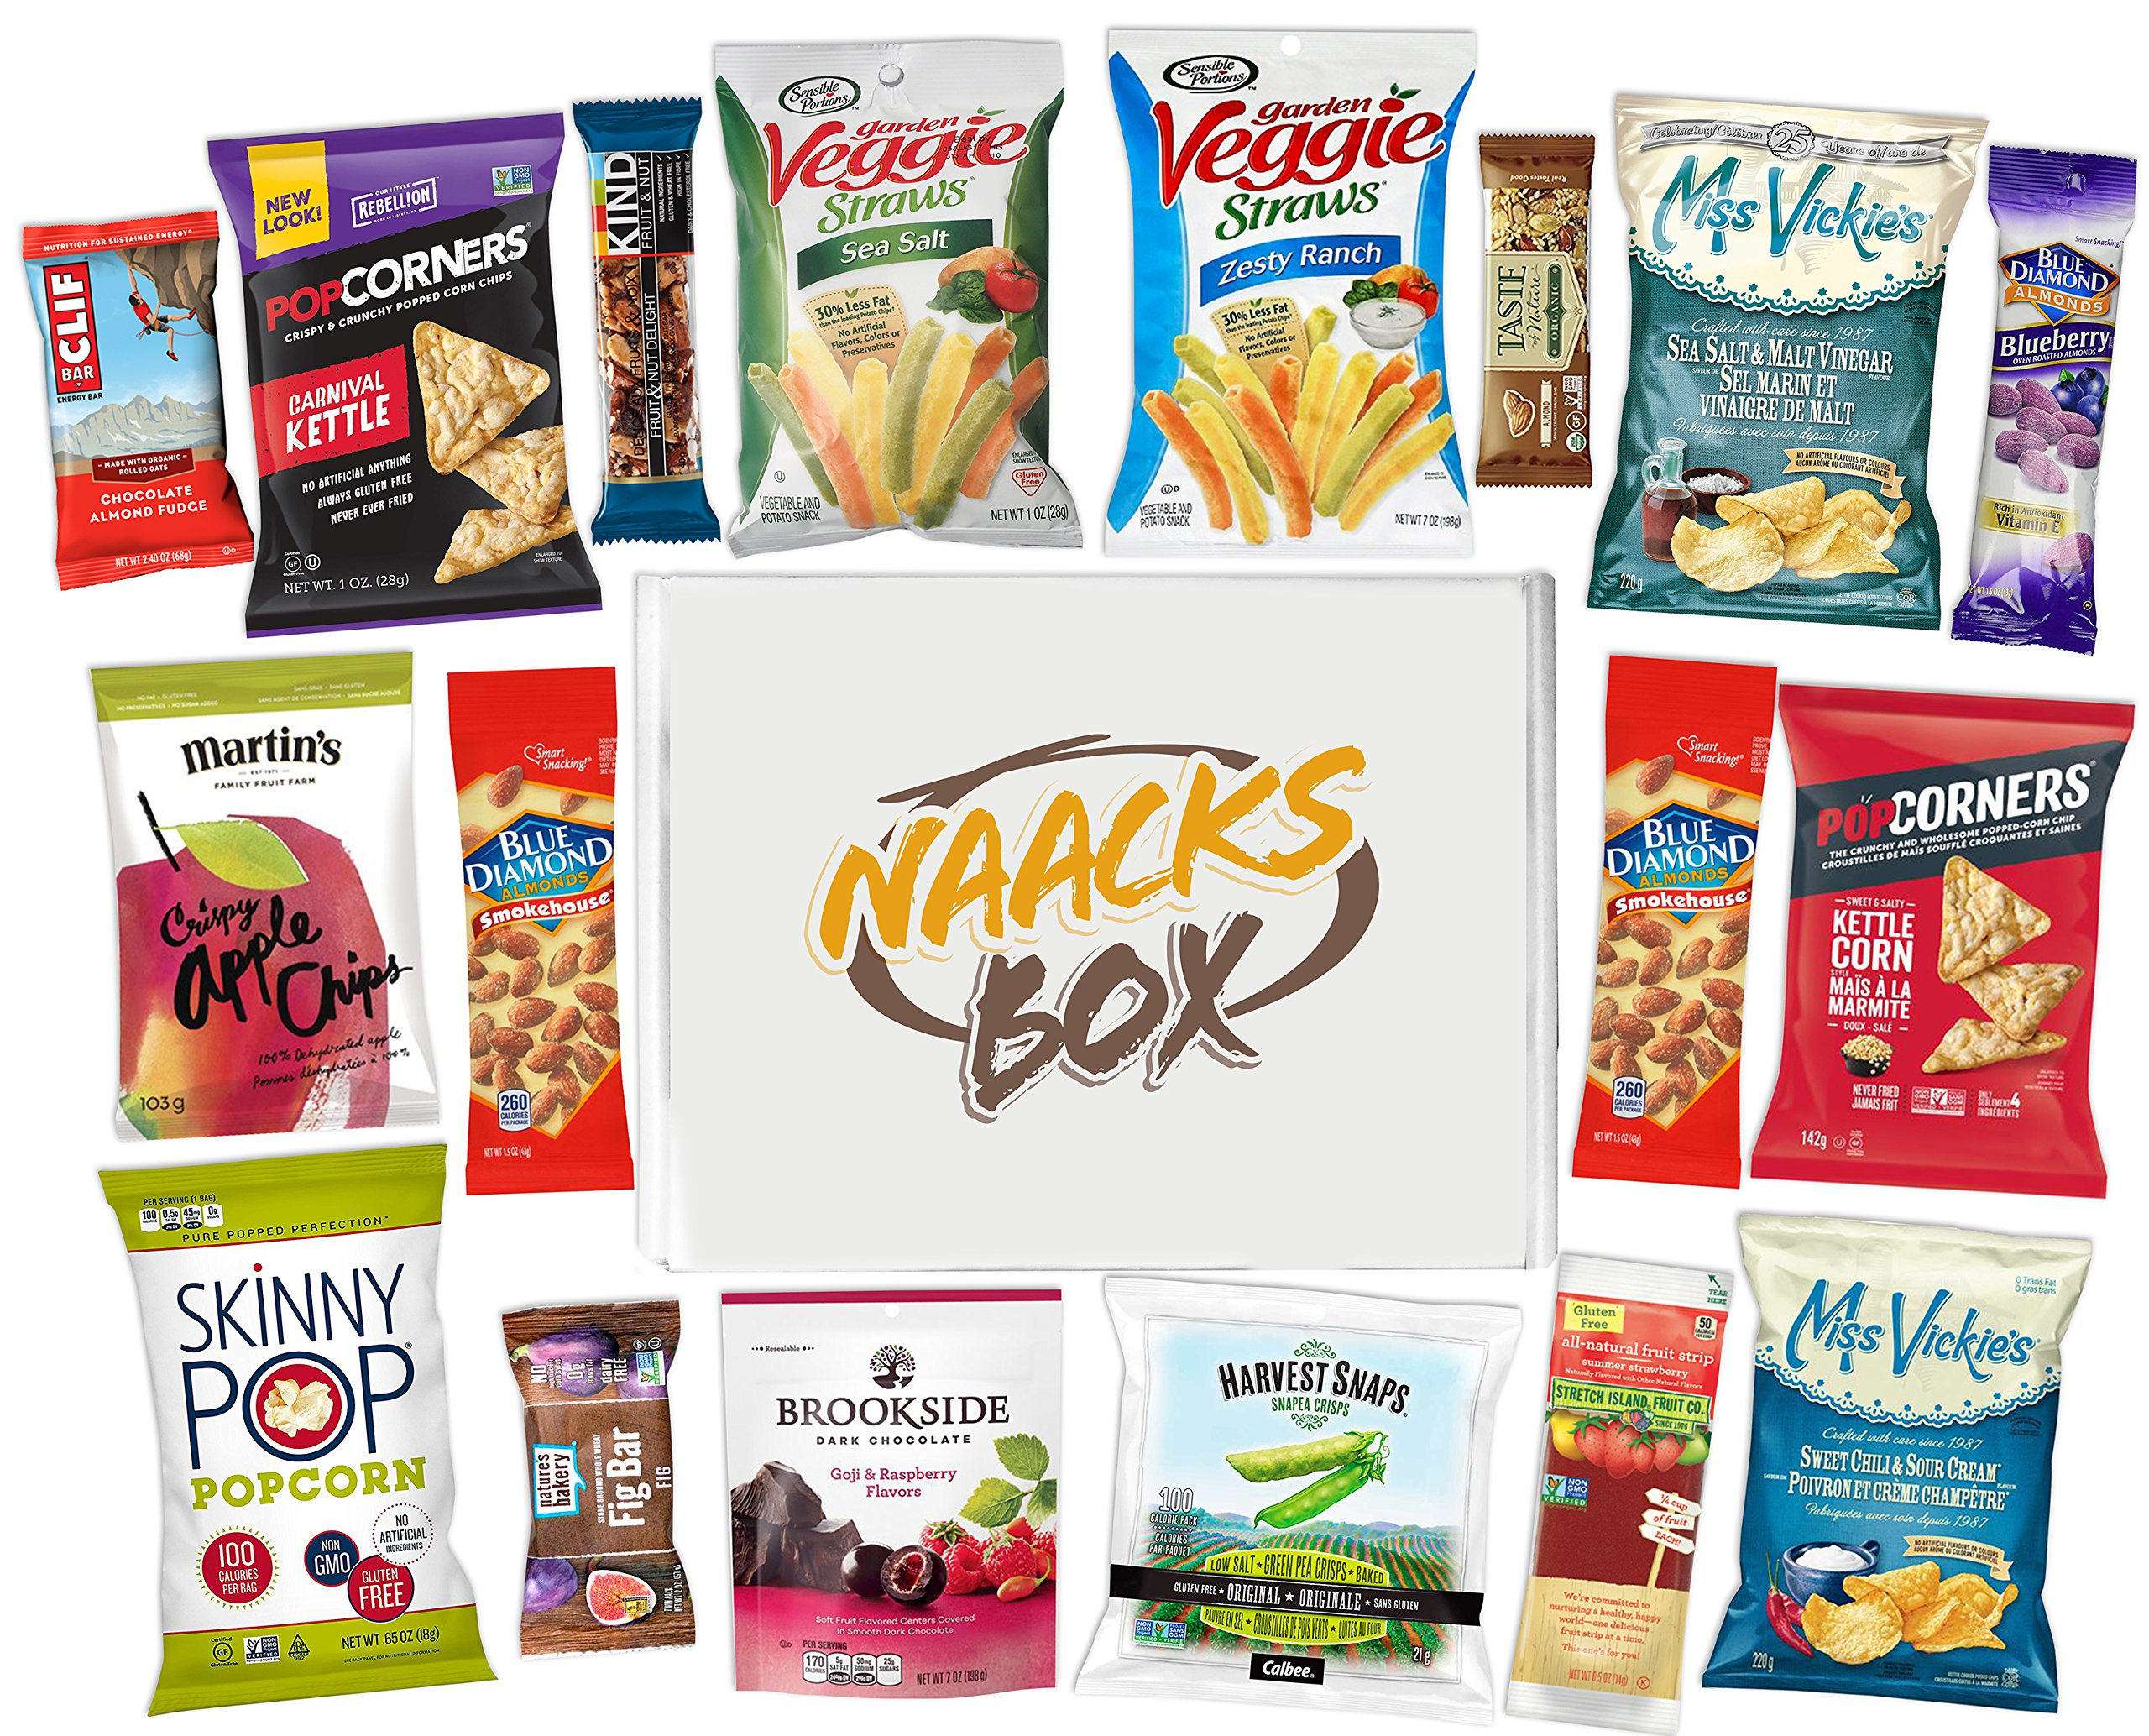 CDM product Kosher Healthy Snacks Care Package | Sweet & Nutritious Bars, Nuts, Potato Chips, Veggie Straws & Others | for School, Adults, Work, Parties & Diet (20 Count) big image